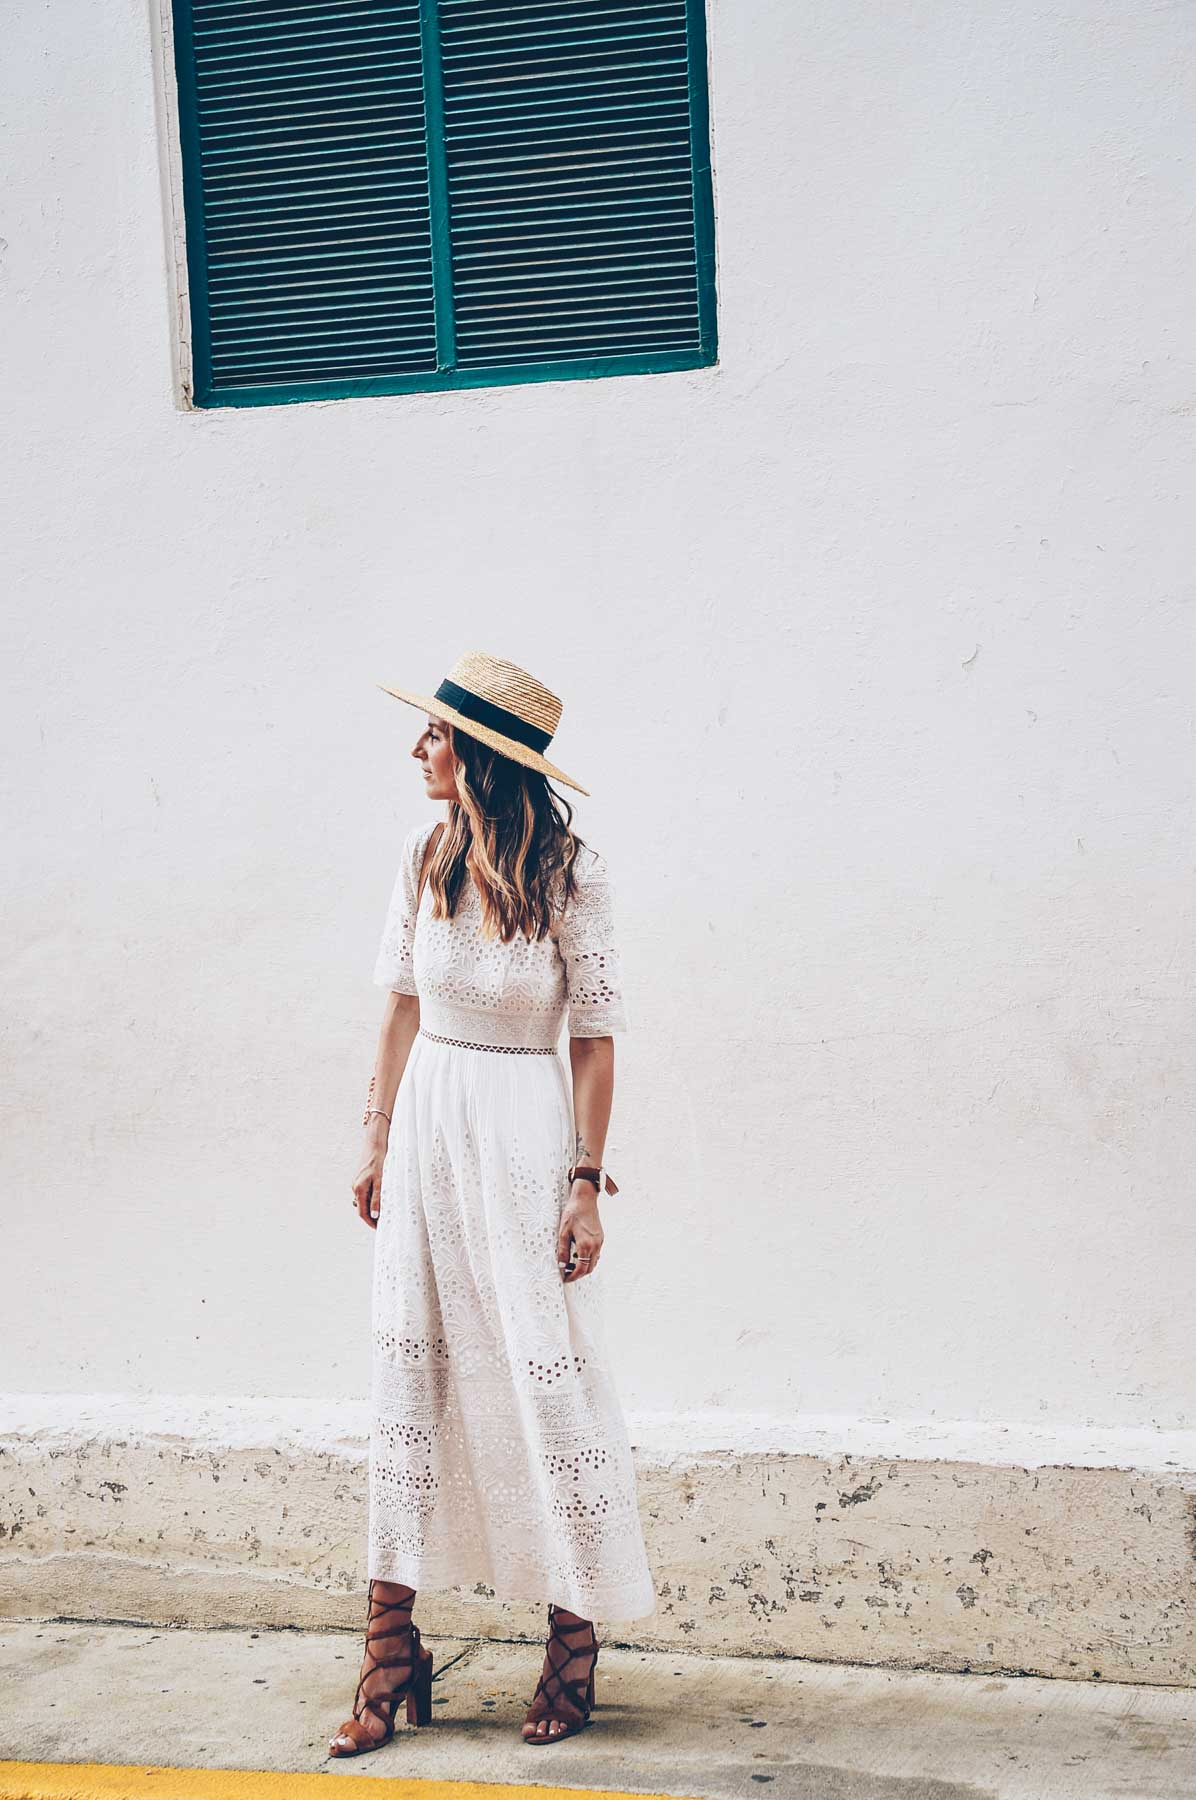 Jess Kirby wearing a white eyelet maxi dress from French Connection in Panama City